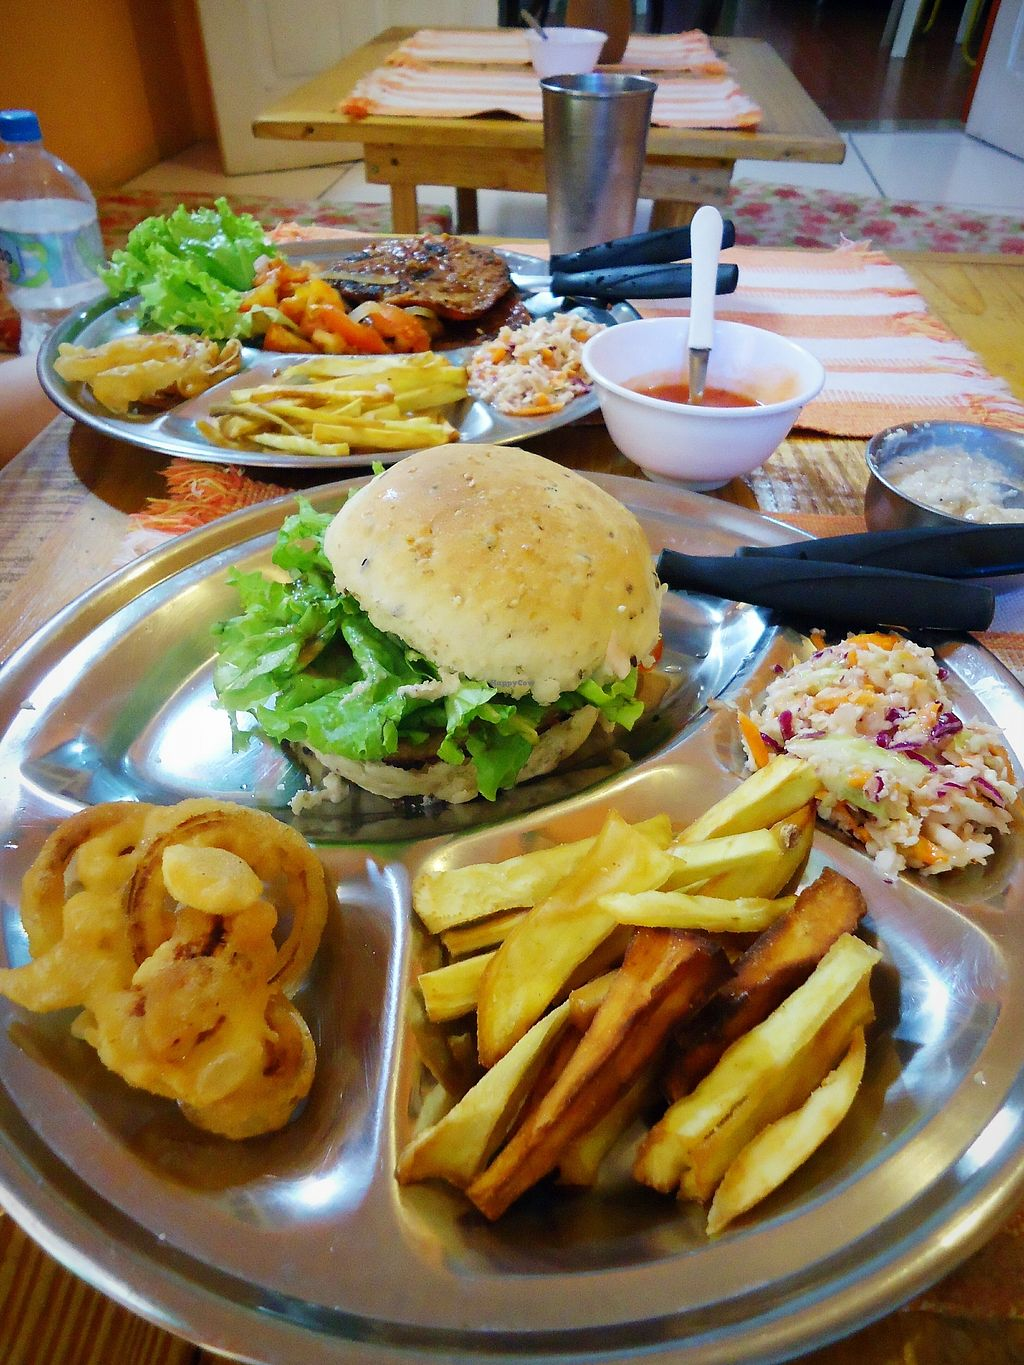 """Photo of Centro Cultural Annapurna  by <a href=""""/members/profile/WayneB"""">WayneB</a> <br/>USA day, vegan burger, onion rings, sweet potato fries, mayo, tomato sauce <br/> November 6, 2017  - <a href='/contact/abuse/image/104191/322400'>Report</a>"""